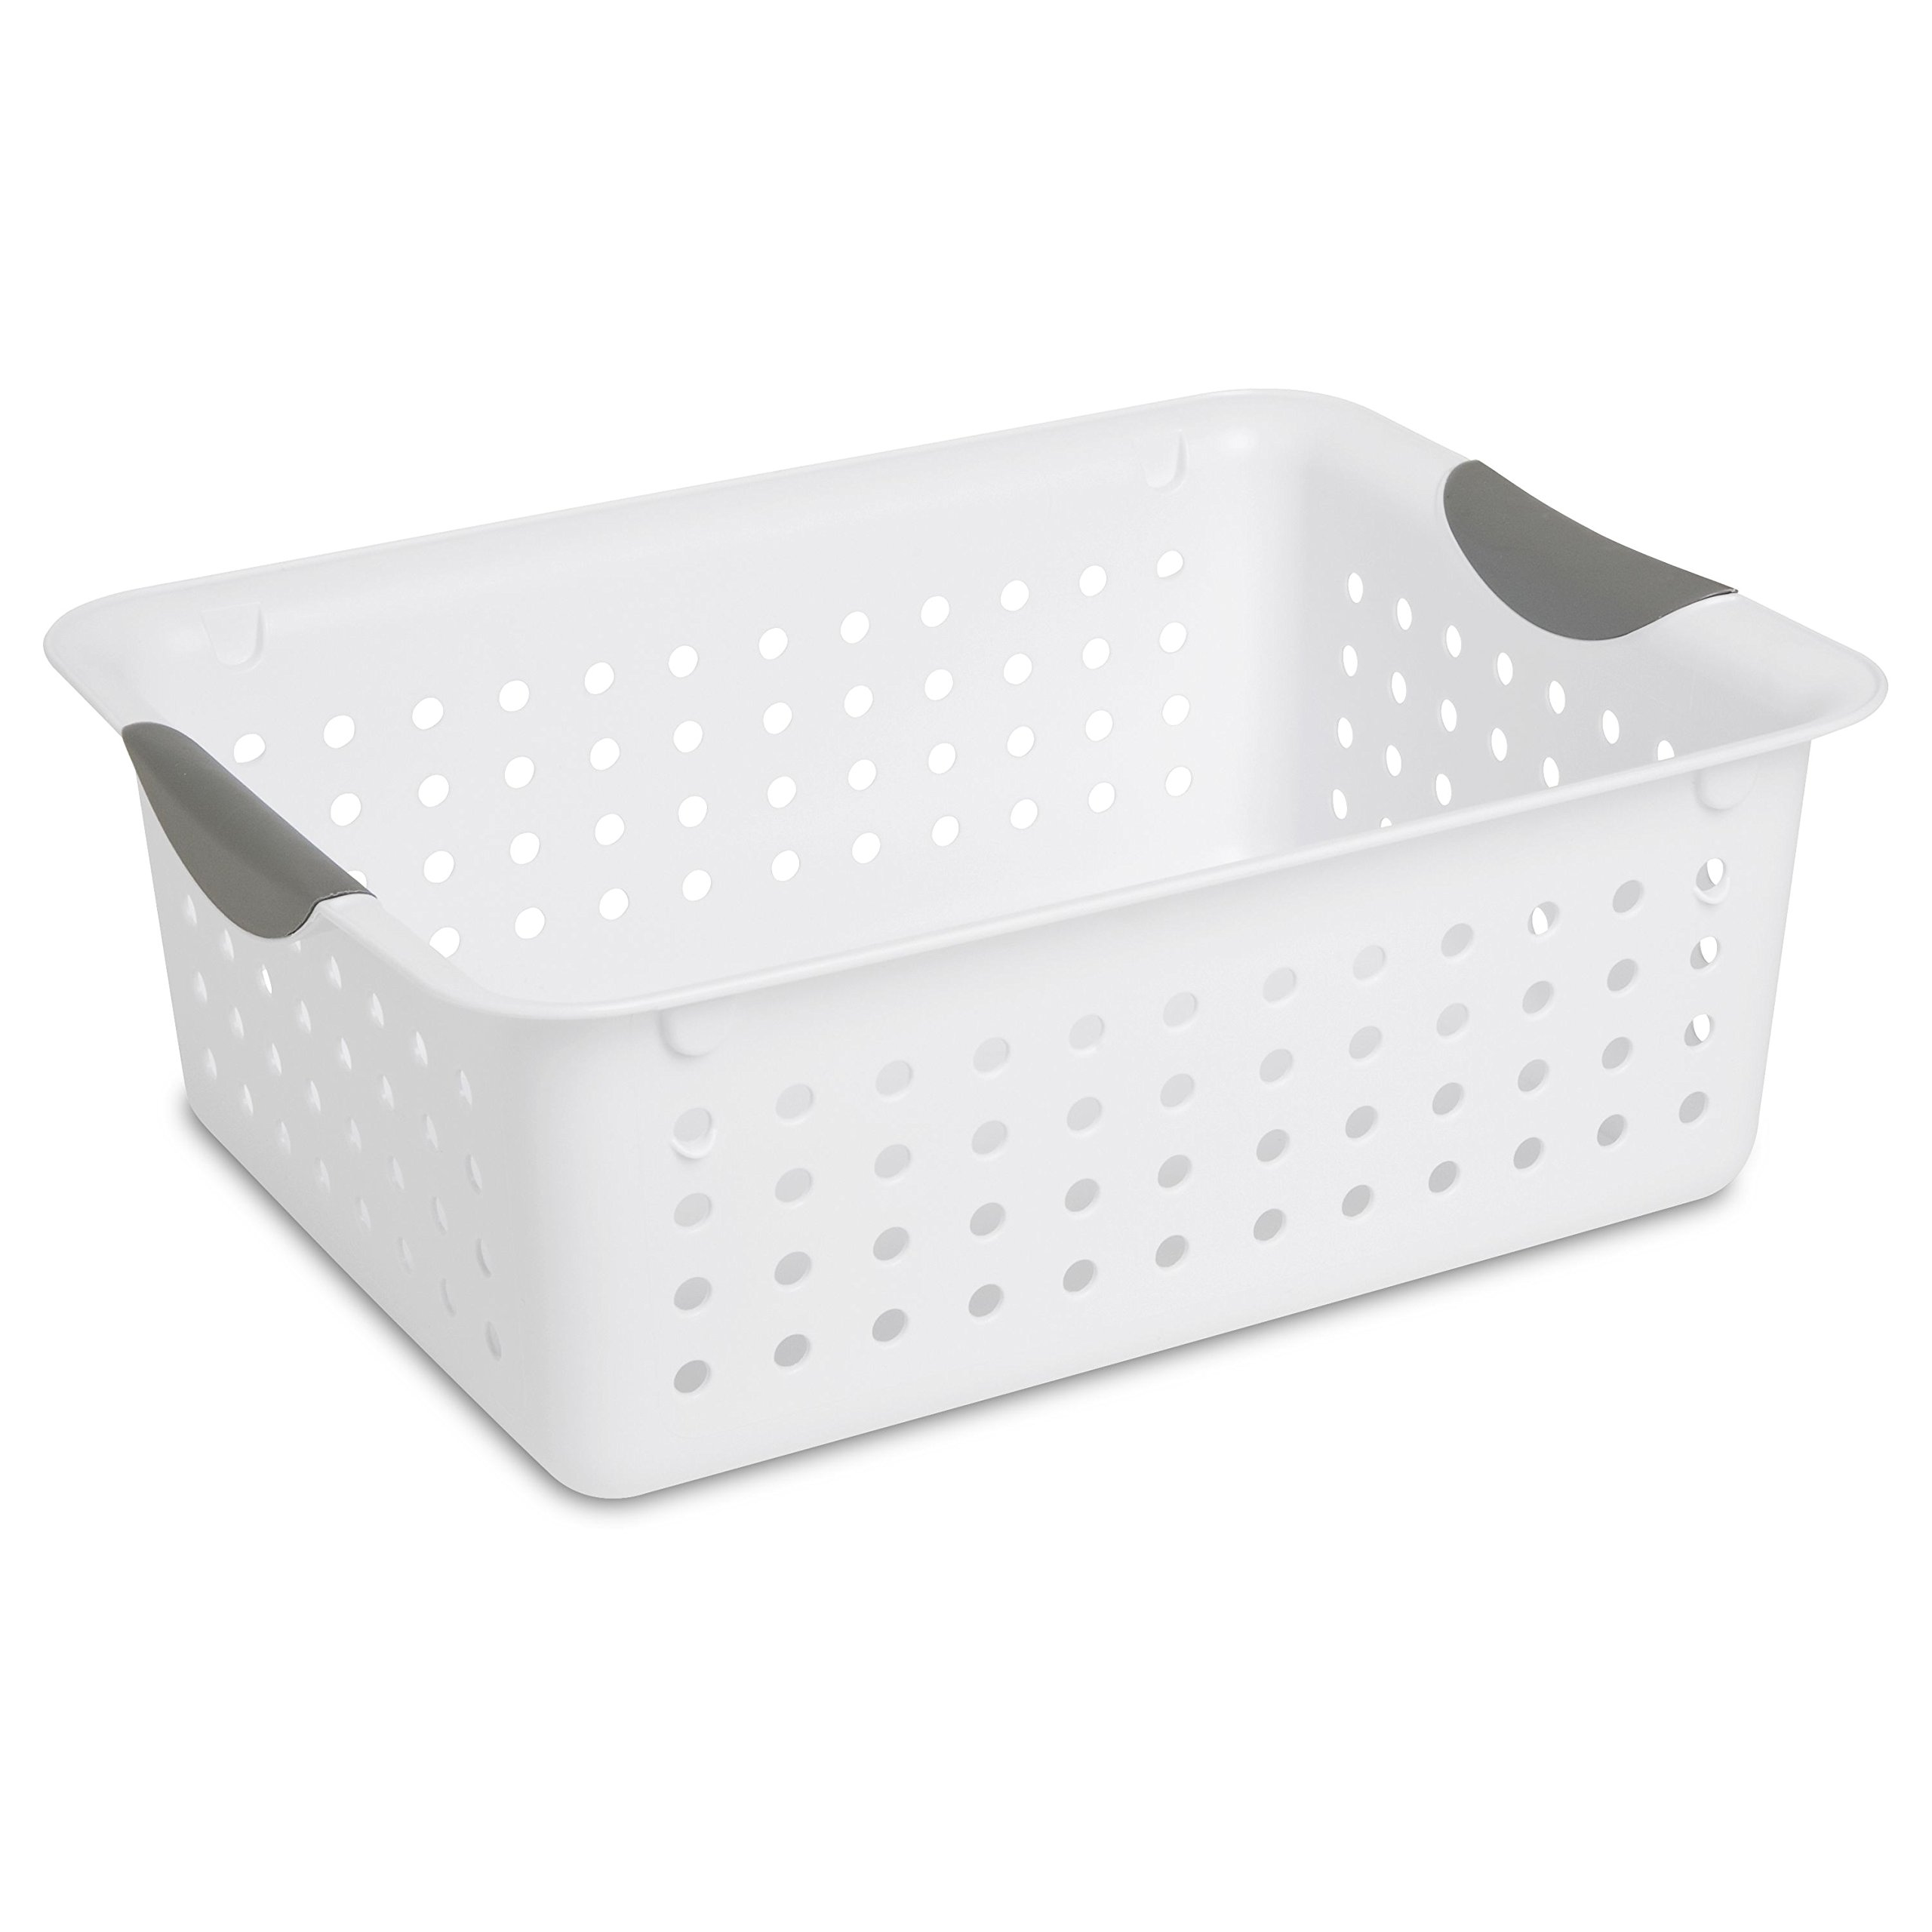 STERILITE 16248006 Medium Ultra Basket, White Basket w/Titanium Inserts, 6-Pack by STERILITE (Image #2)